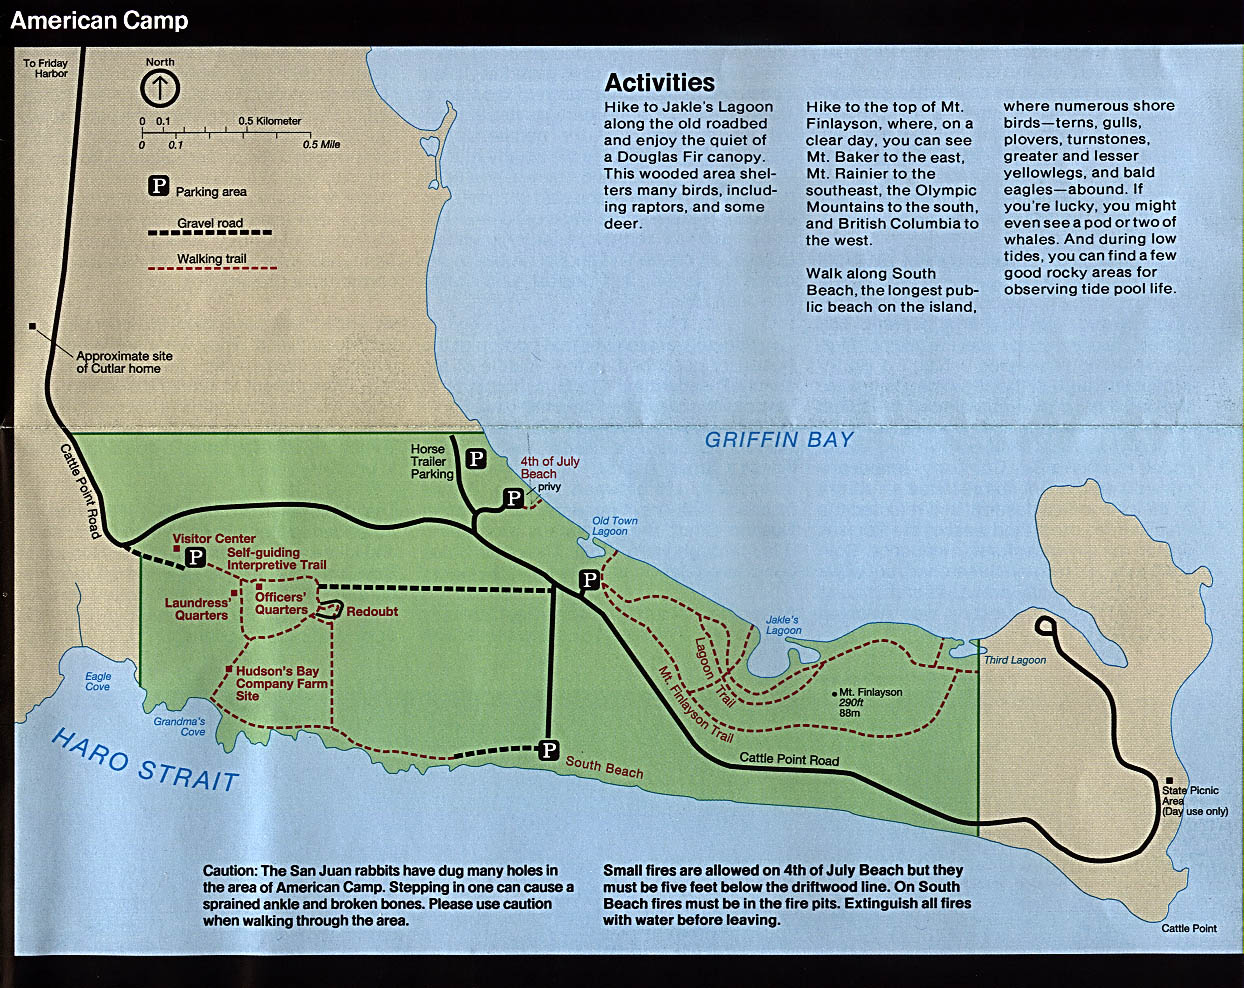 Maps of United States National Parks, Monuments and Historic Sites San Juan Island National Historical Park - American Camp [Washington] (Park Map) 1997 (357K)